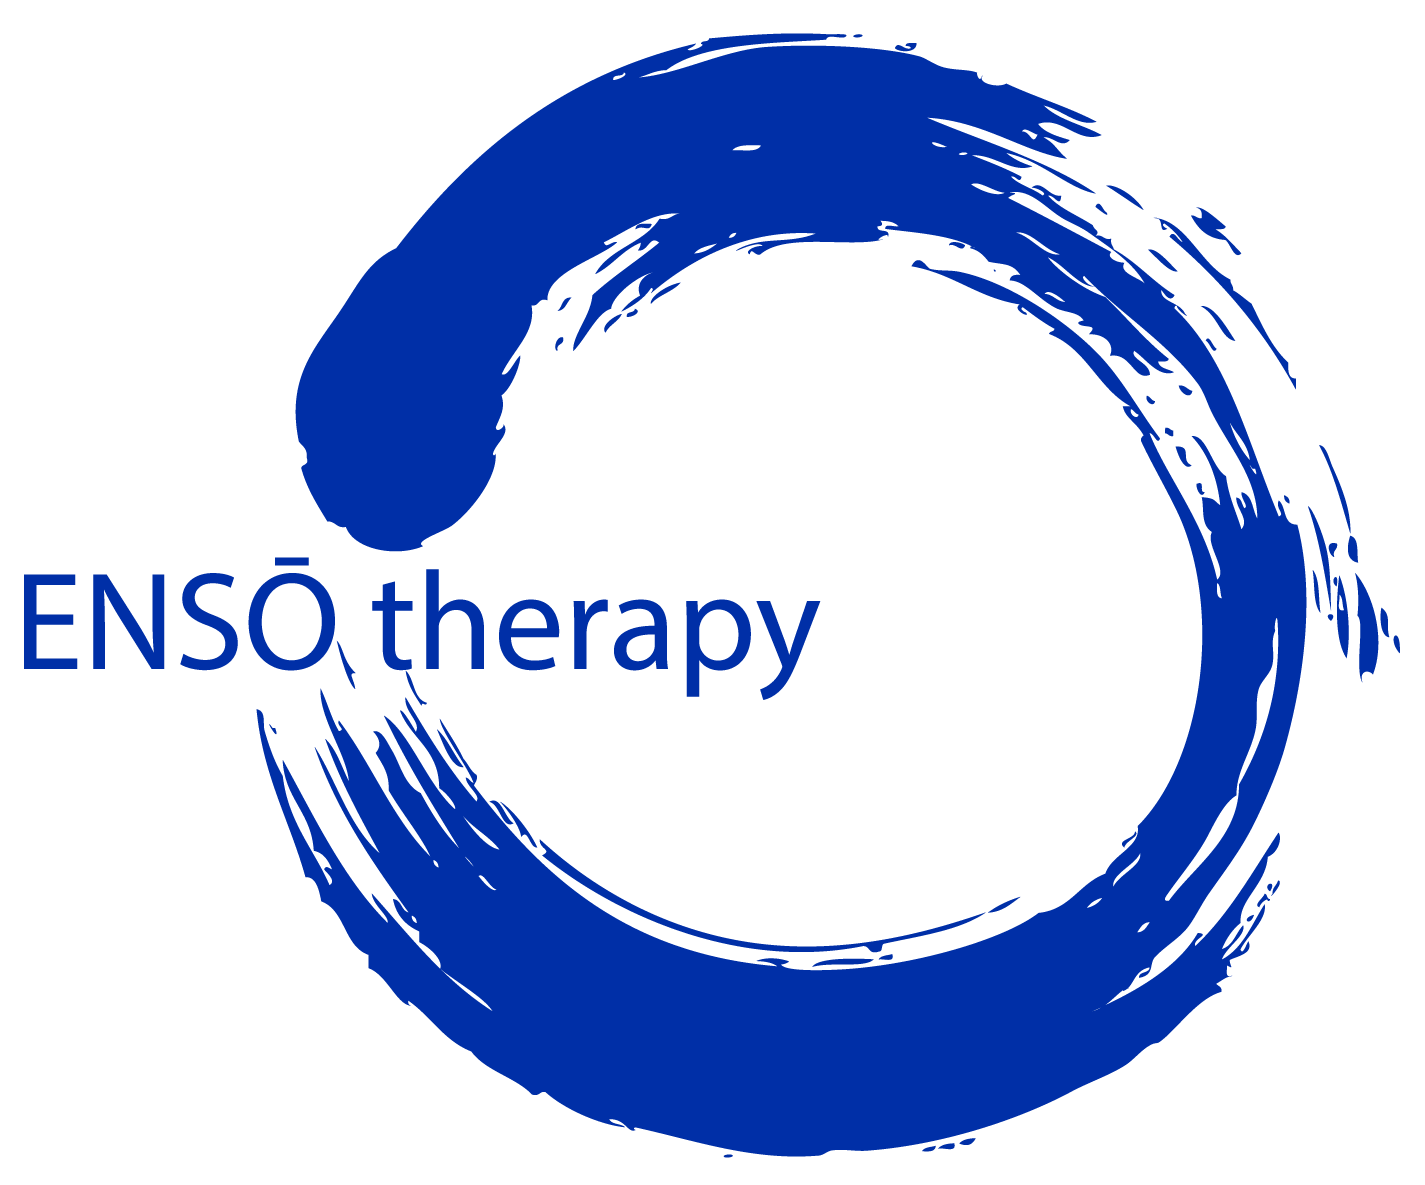 ENSO therapy